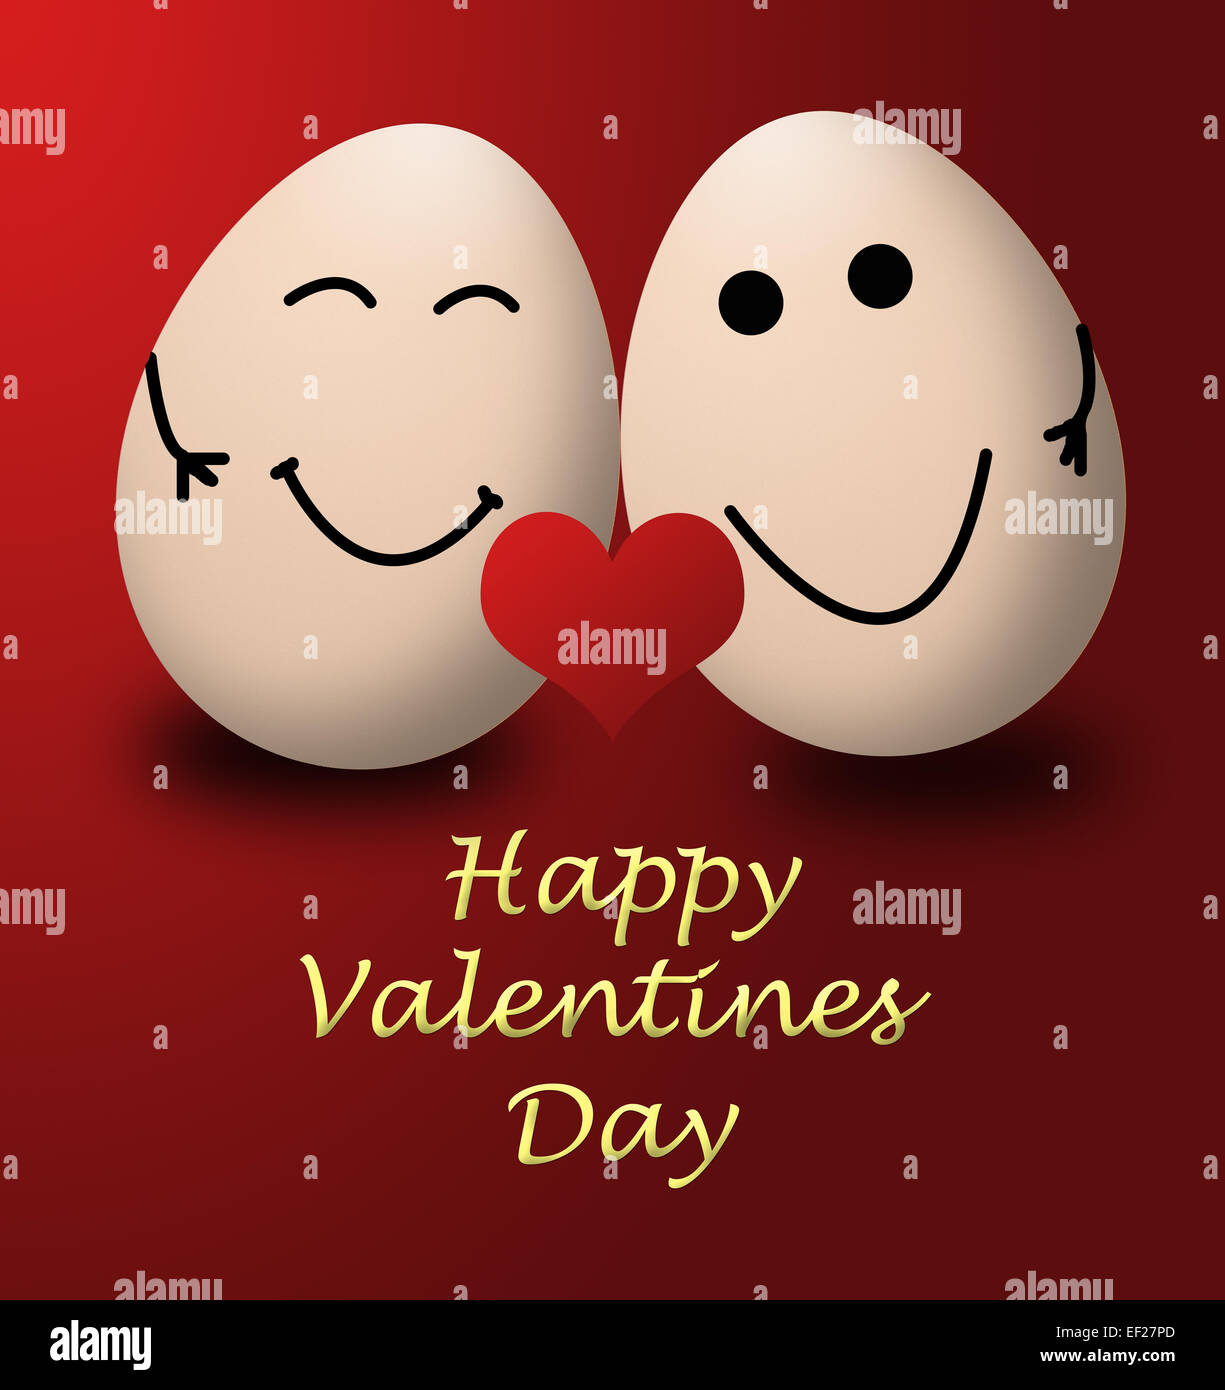 Happy Valentines Day My Egg Love Red Heart